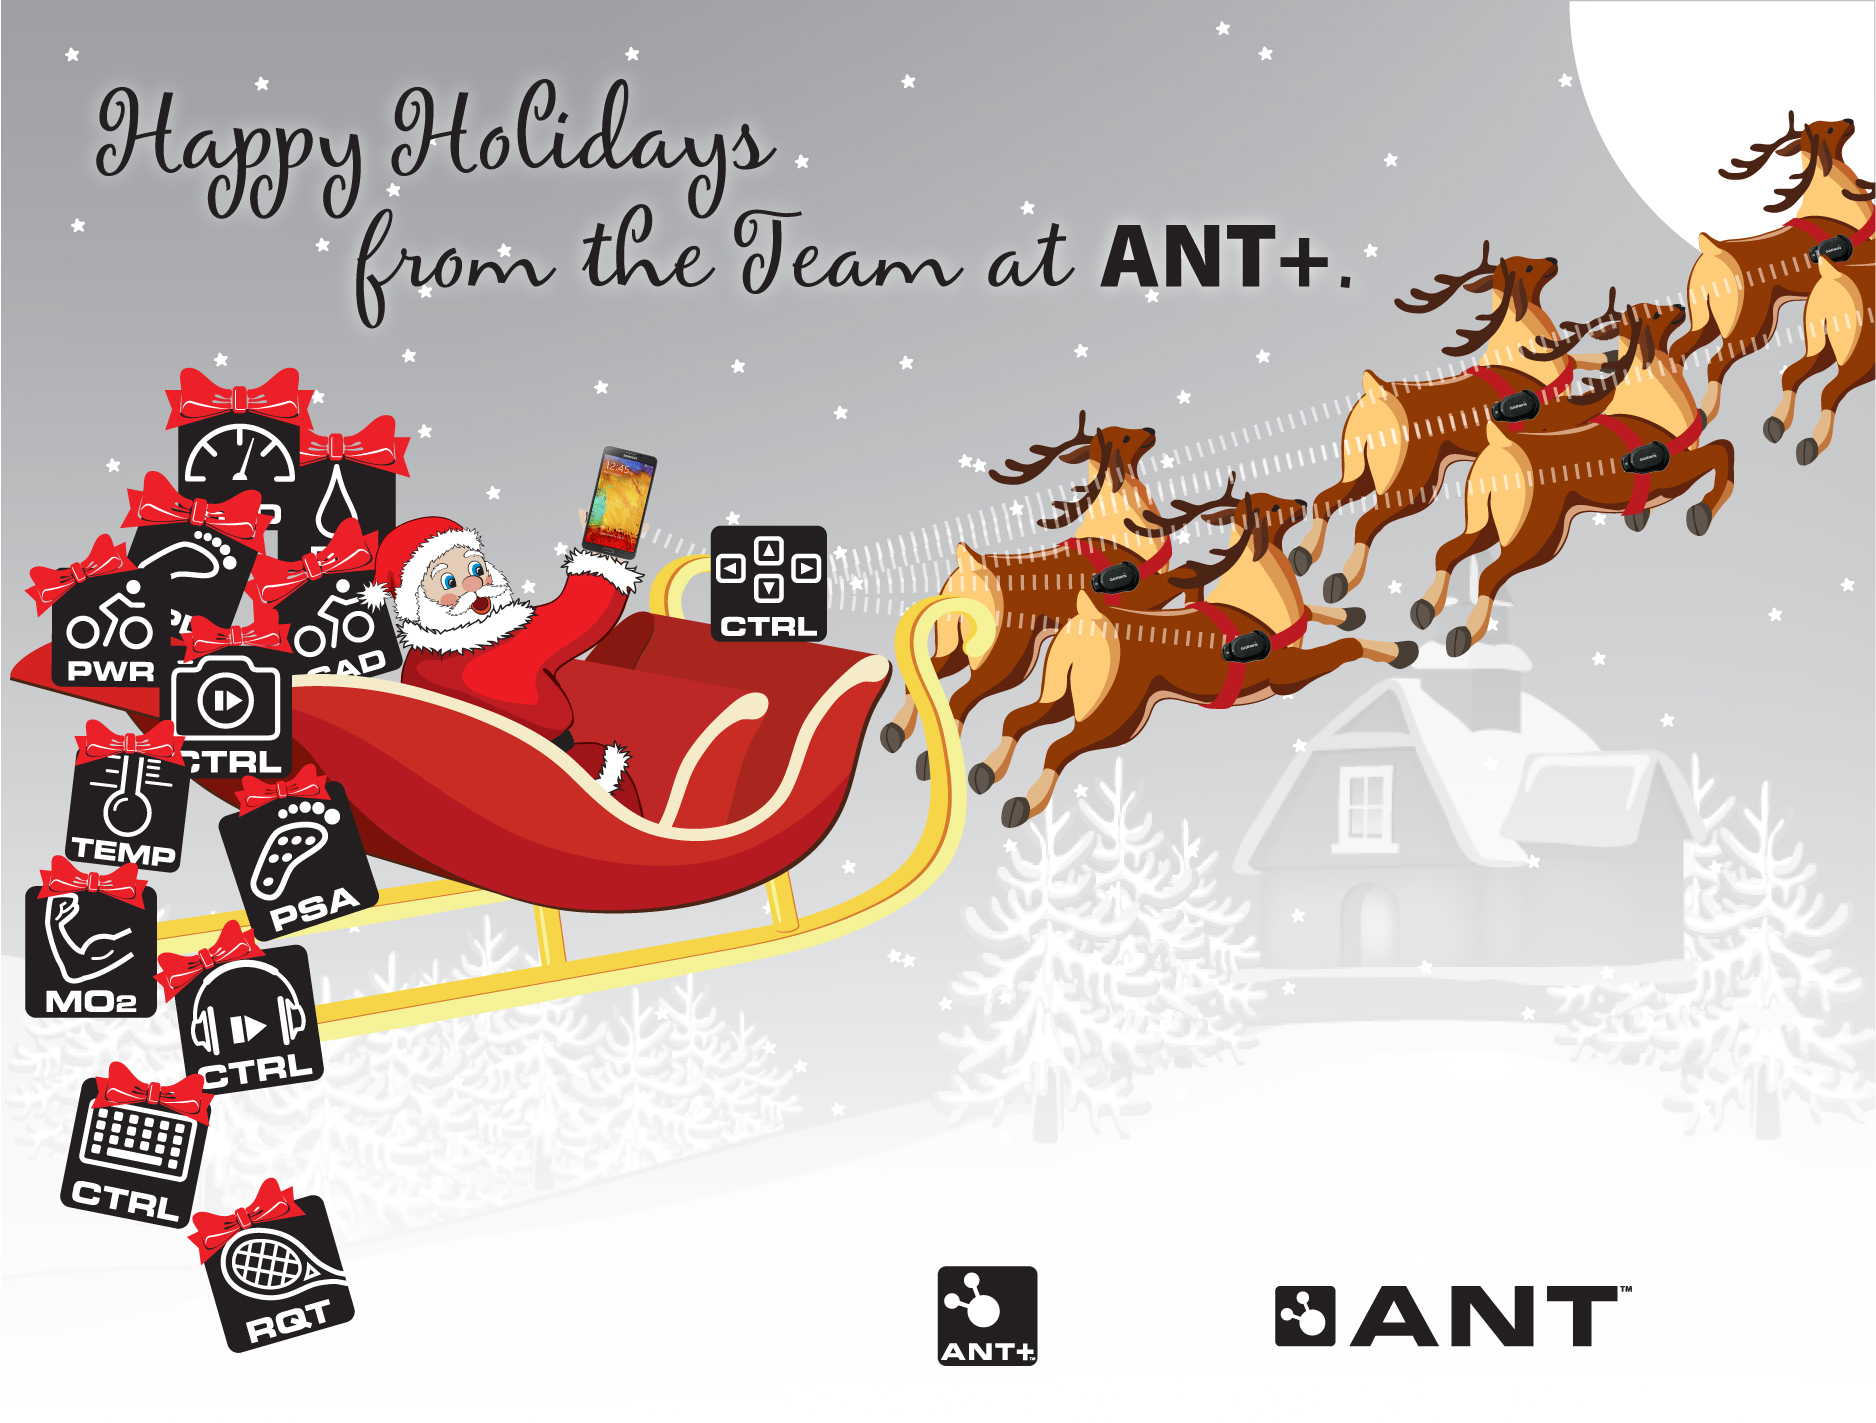 Happy Holidays from the team at ANT+!